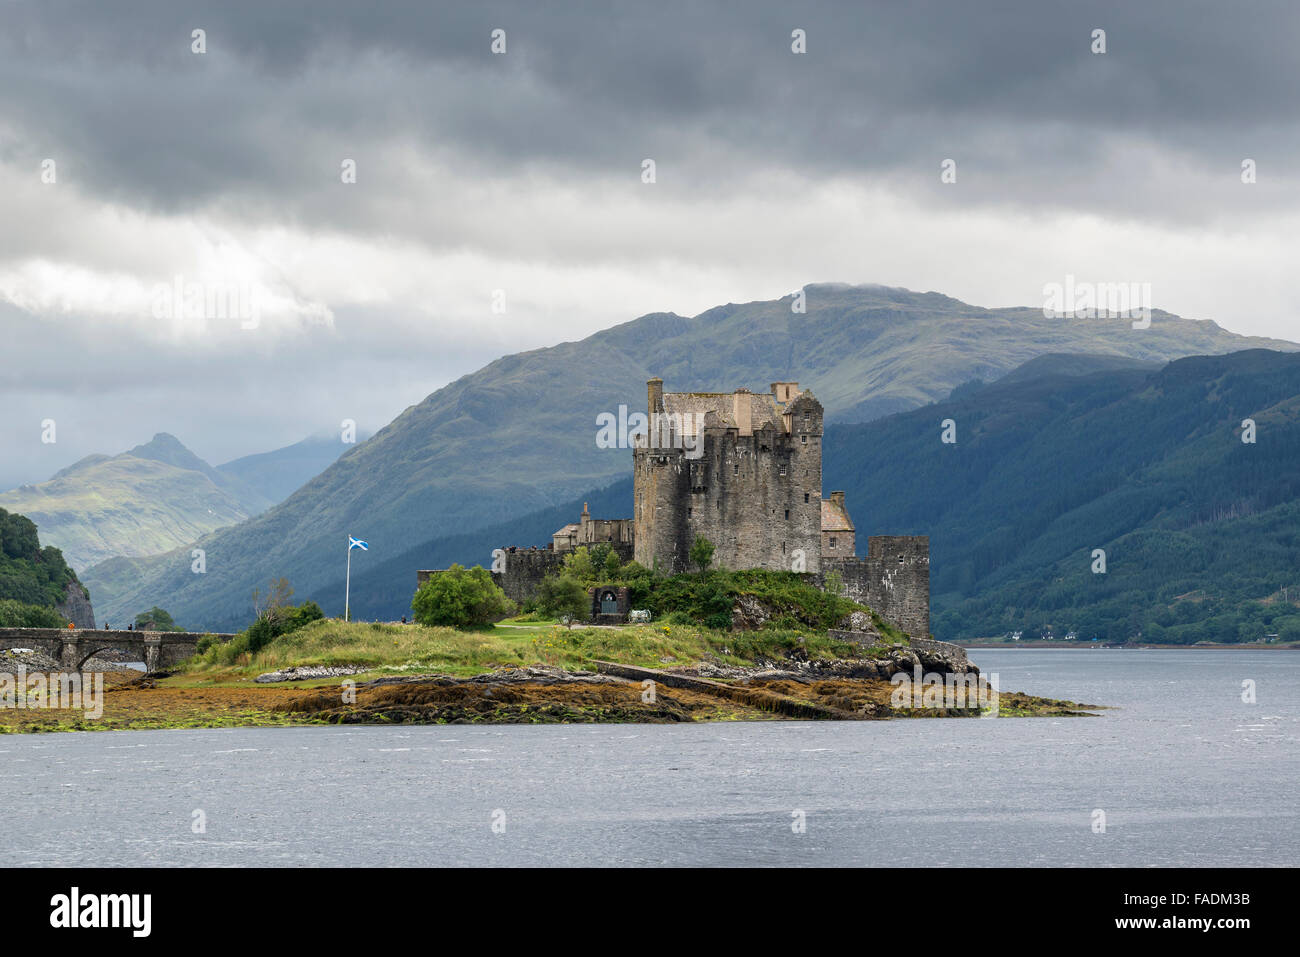 Eilean Donan Castle at Dornie, Western Ross, Scottish Highlands, Scotland, United Kingdom - Stock Image